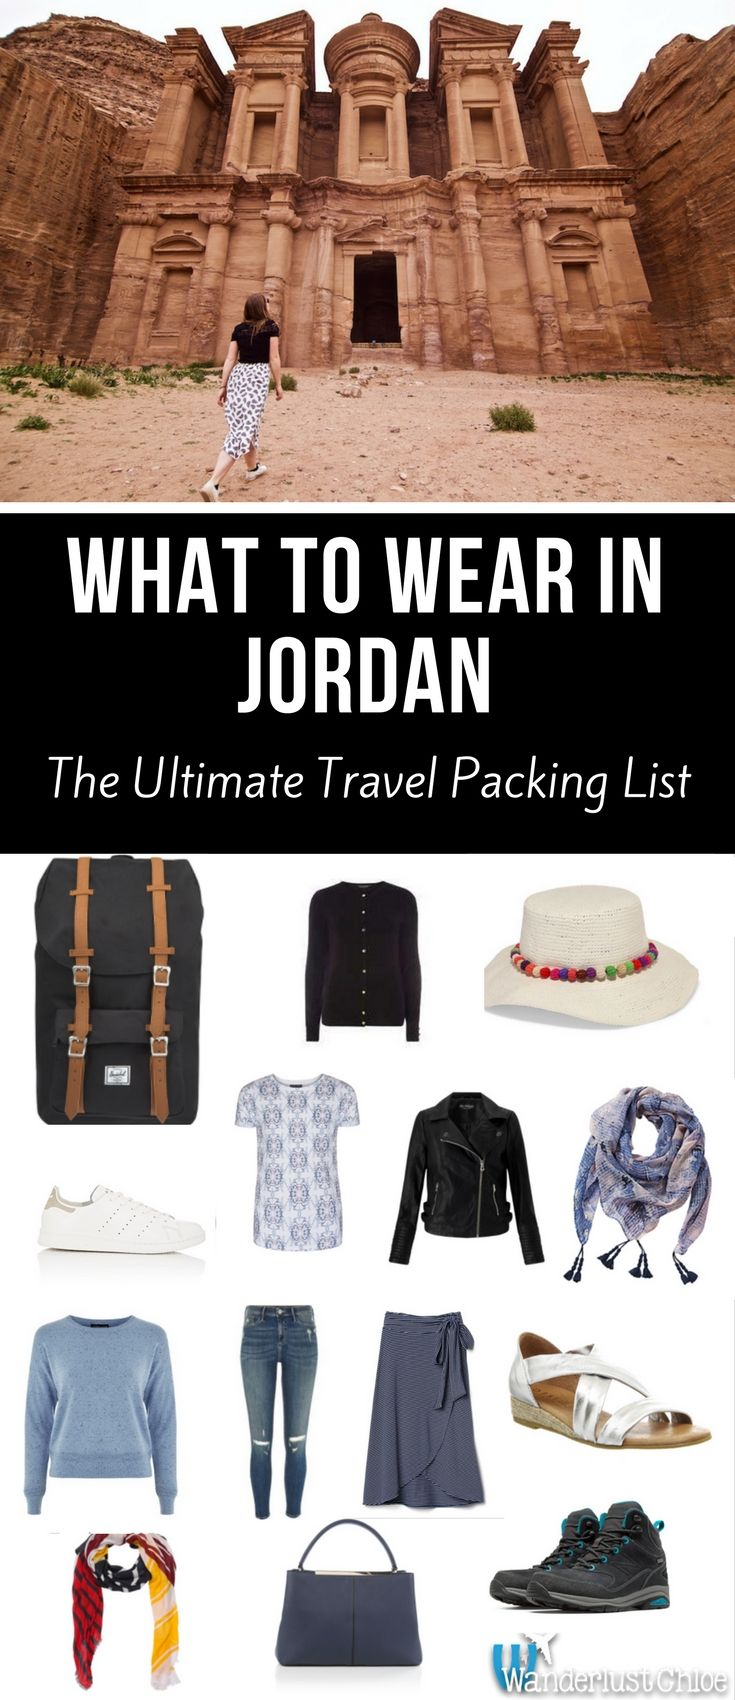 What To Wear In Jordan - The Ultimate Travel Packing List . From footwear and accessories to what women should wear in Jordan, this is a great guide to clothing in Jordan. https://www.wanderlustchloe.com/what-to-wear-jordan-clothes-packing-guide/